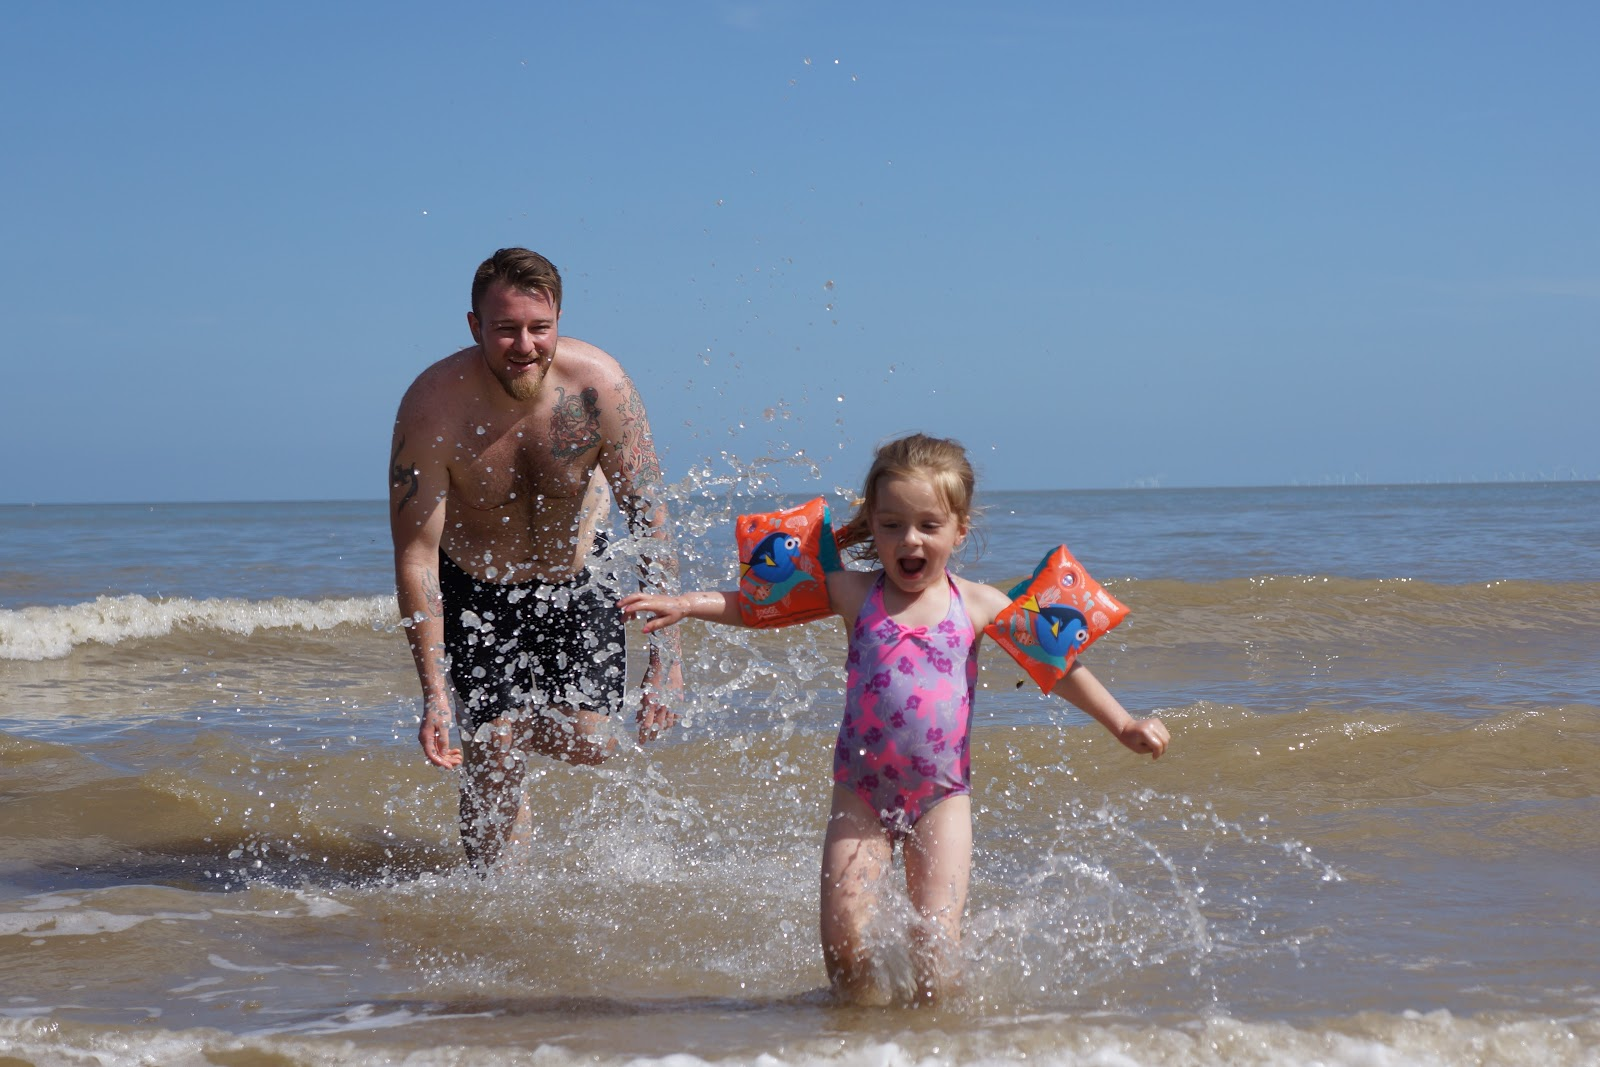 dad and daughter splashing in the sea